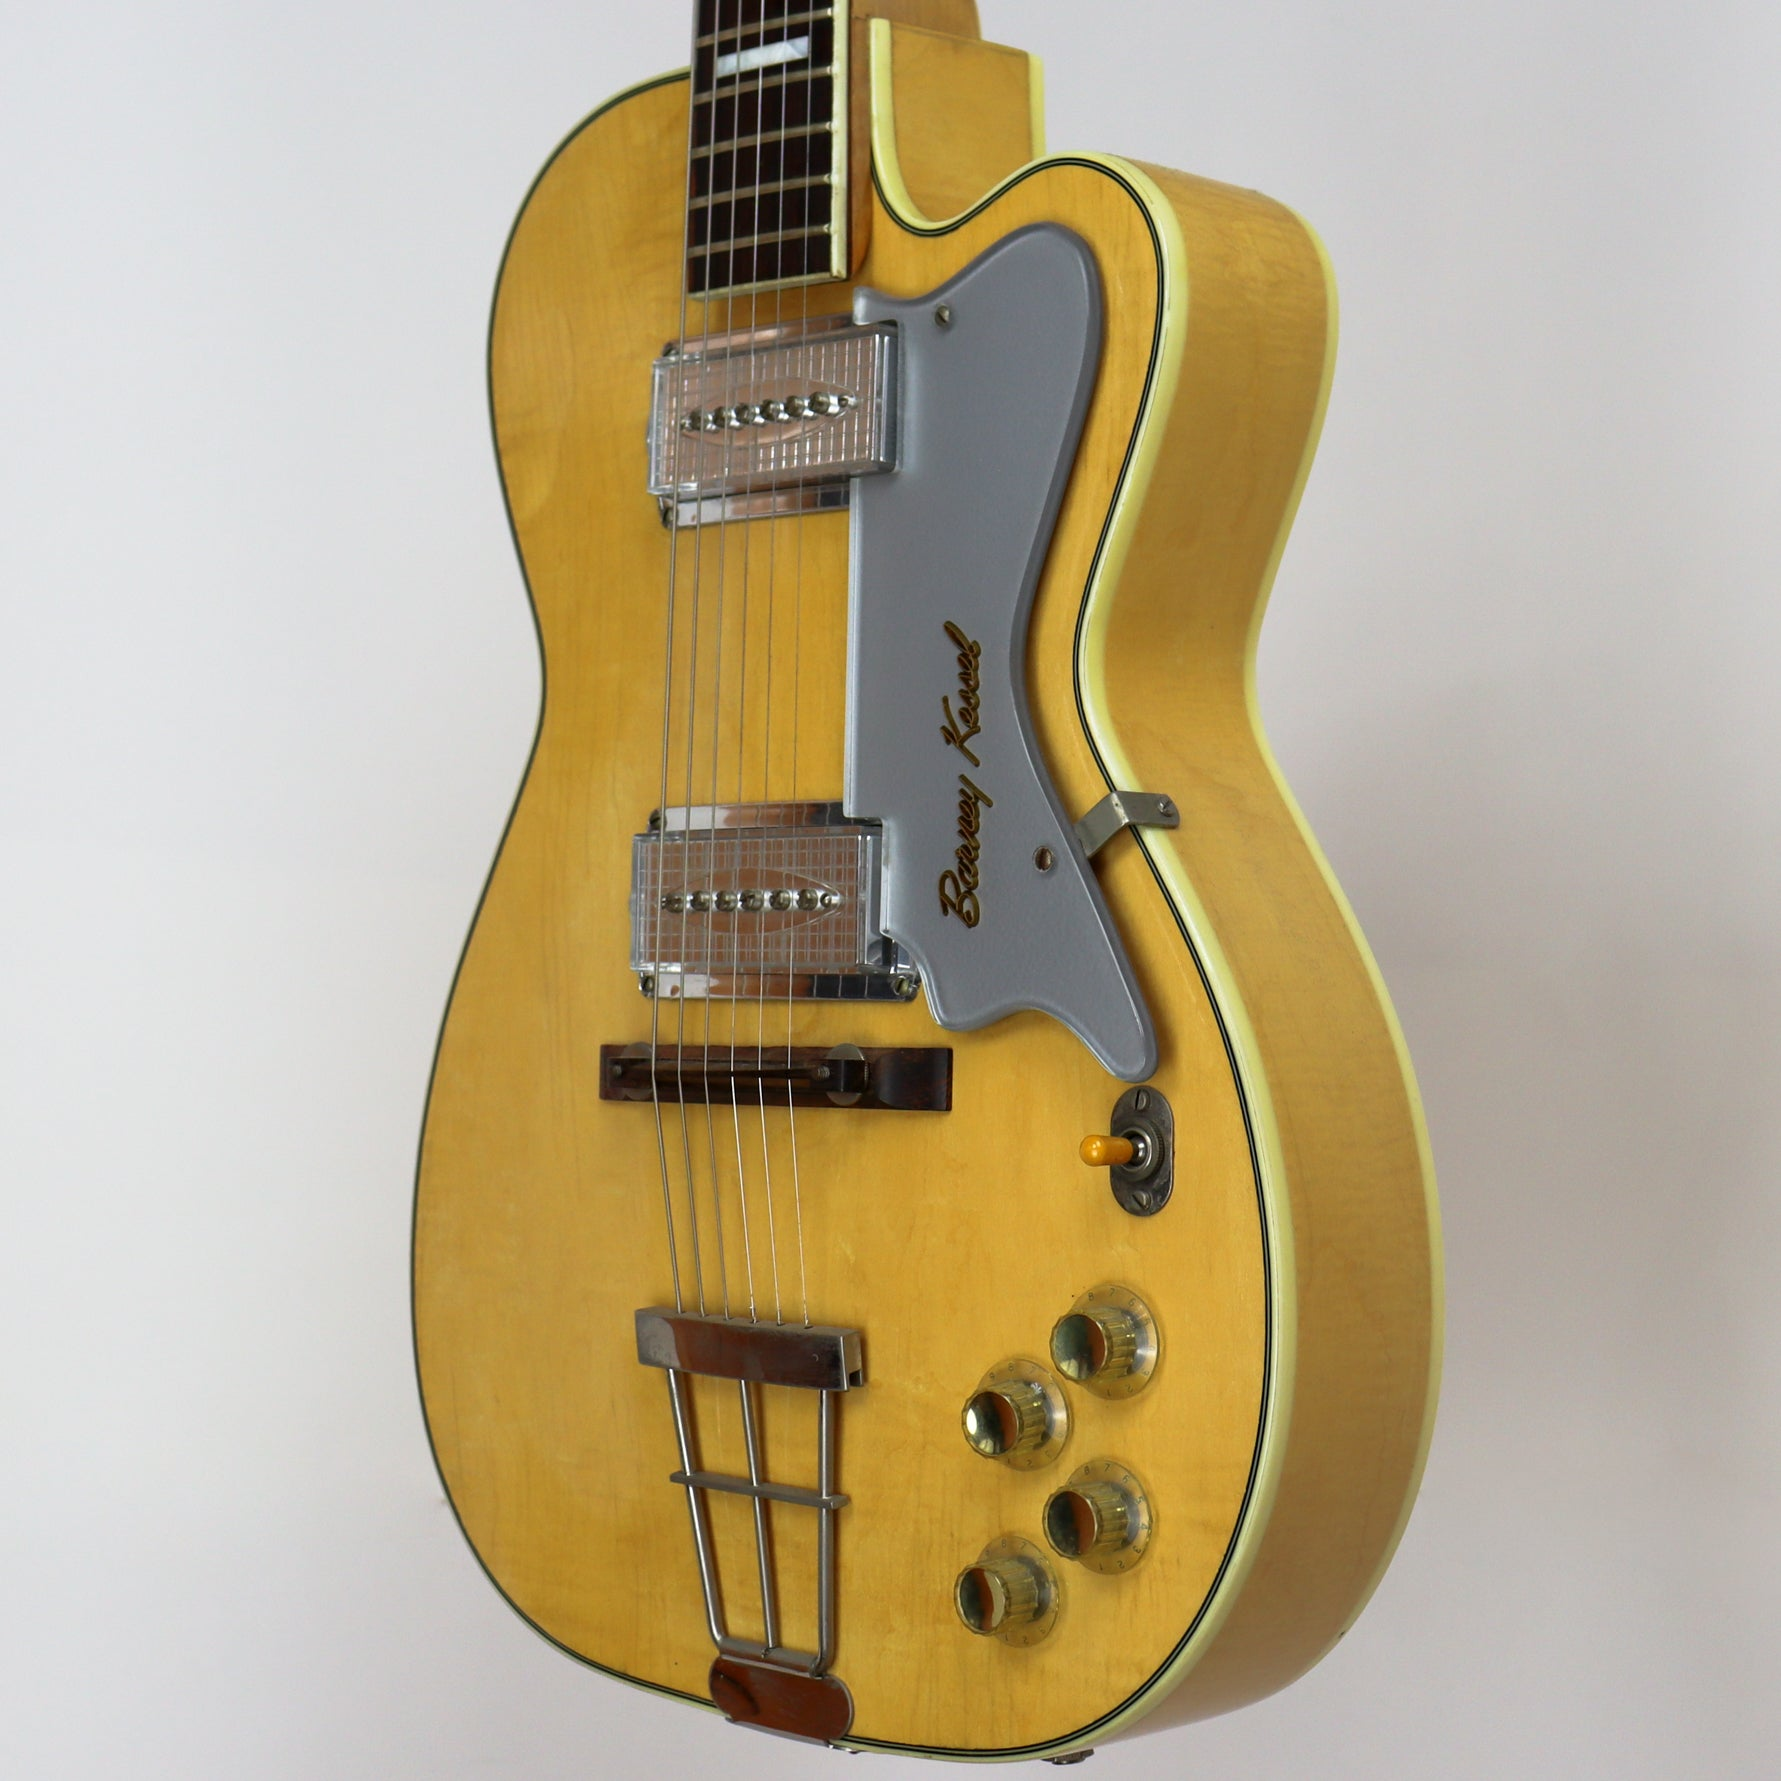 Kay k6700 Barney Kessel Artist Model Blonde Late '50s